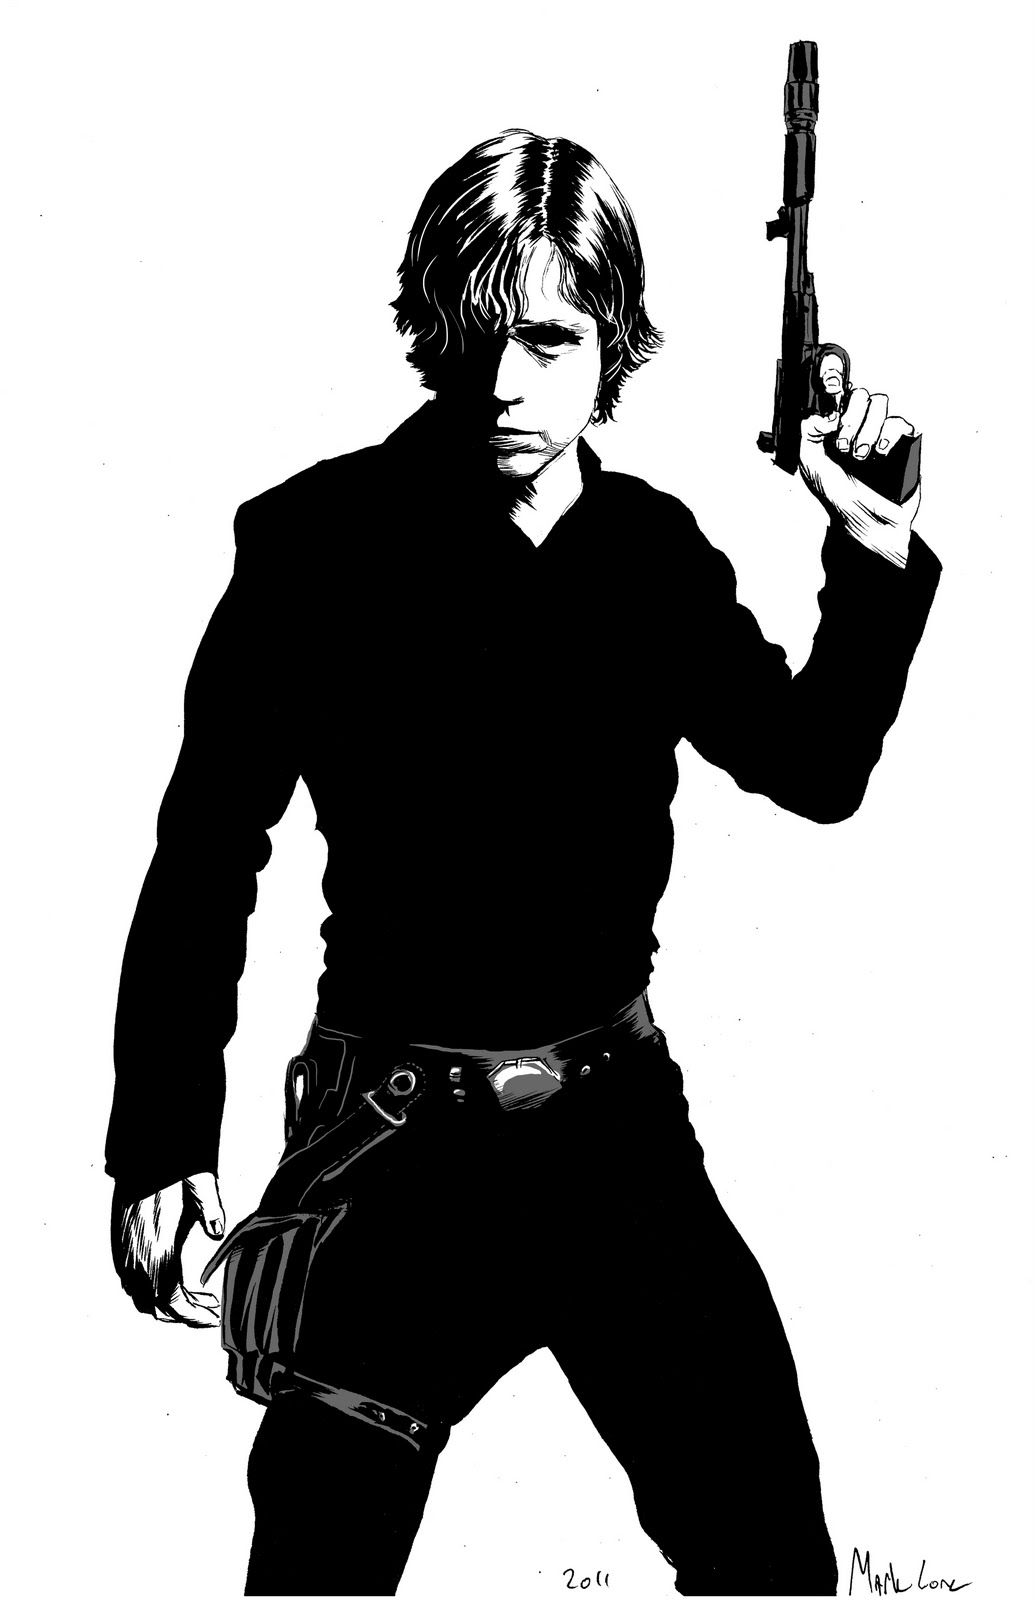 1035x1600 Luke Skywalker By Mark Lone. My Fave Star Wars Character Star